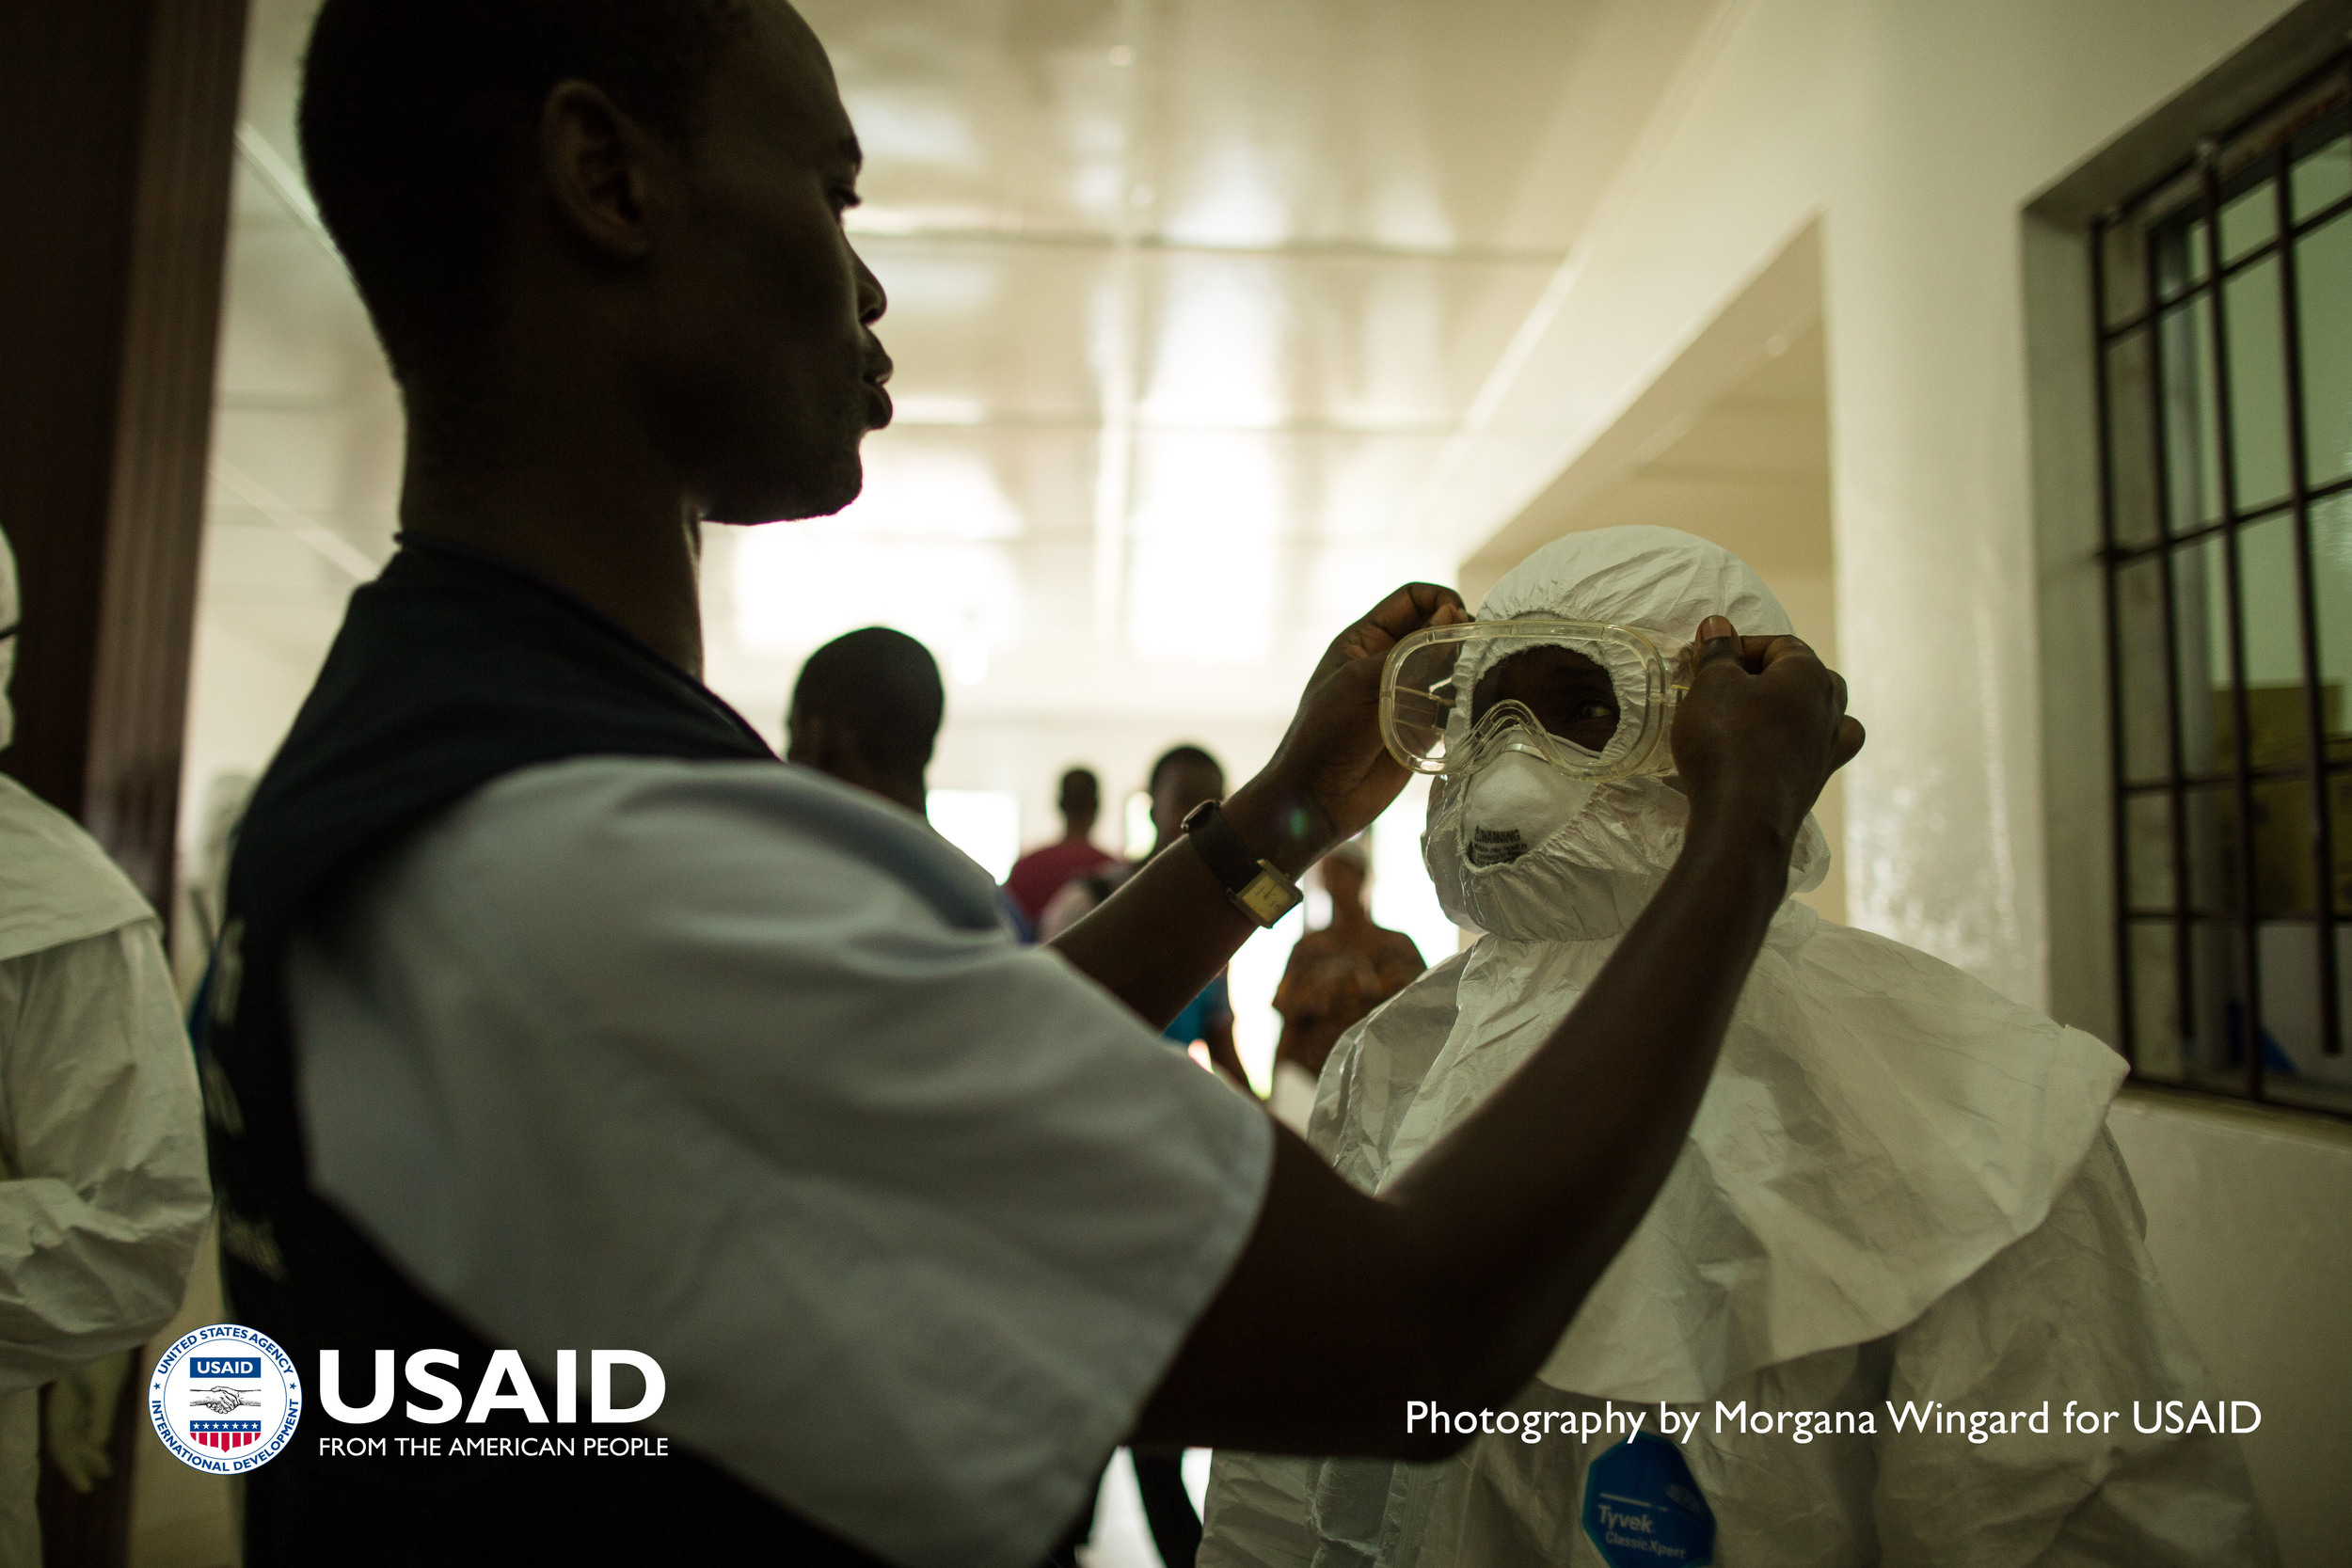 Health care workers put on personal protective equipment (PPE) before going into the hot zone at Island Clinic in Monrovia, Liberia on Sept. 22 2014. / Morgana Wingard, USAID